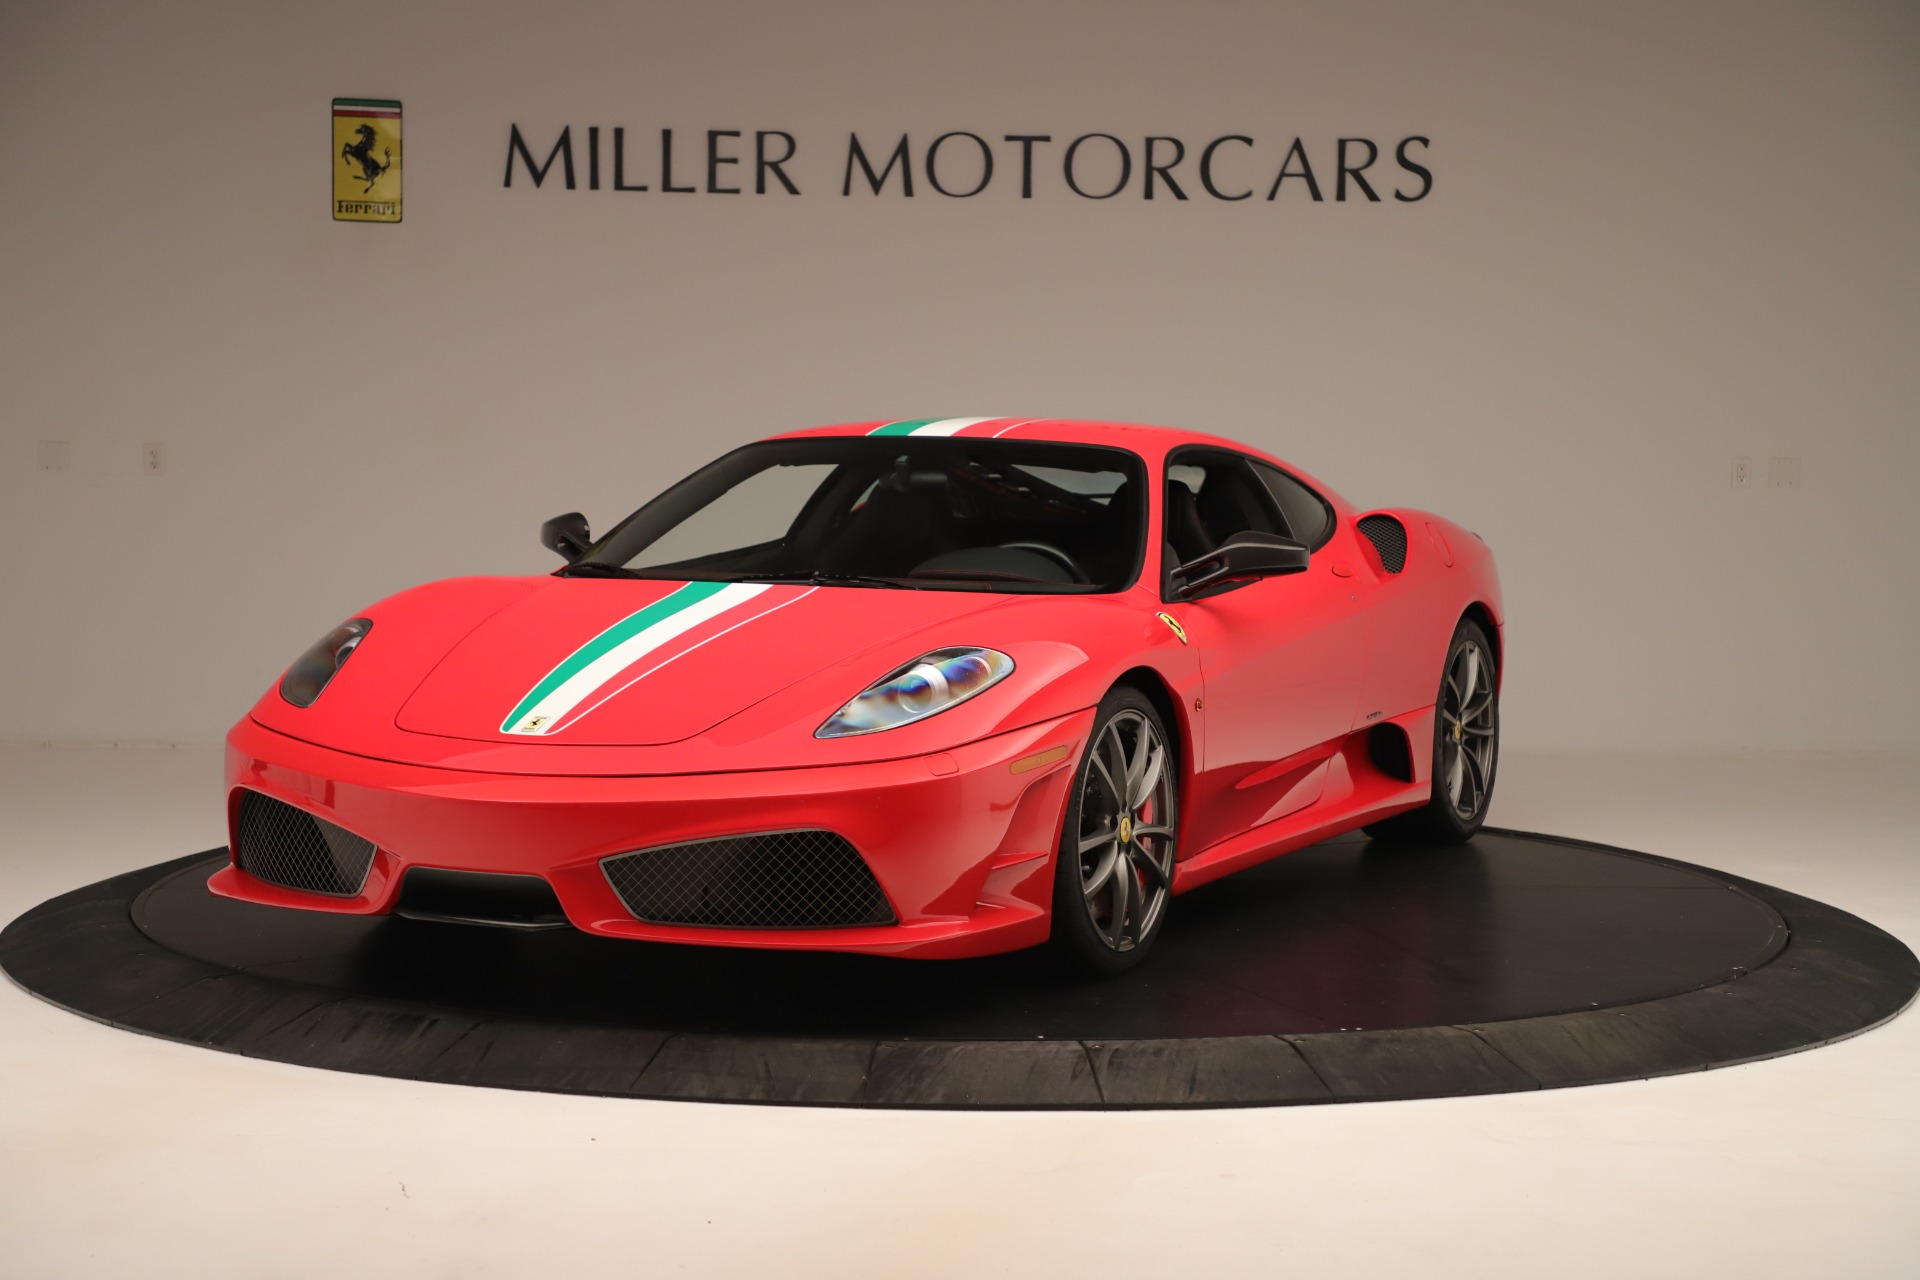 Used 2008 Ferrari F430 Scuderia for sale $229,900 at Maserati of Westport in Westport CT 06880 1